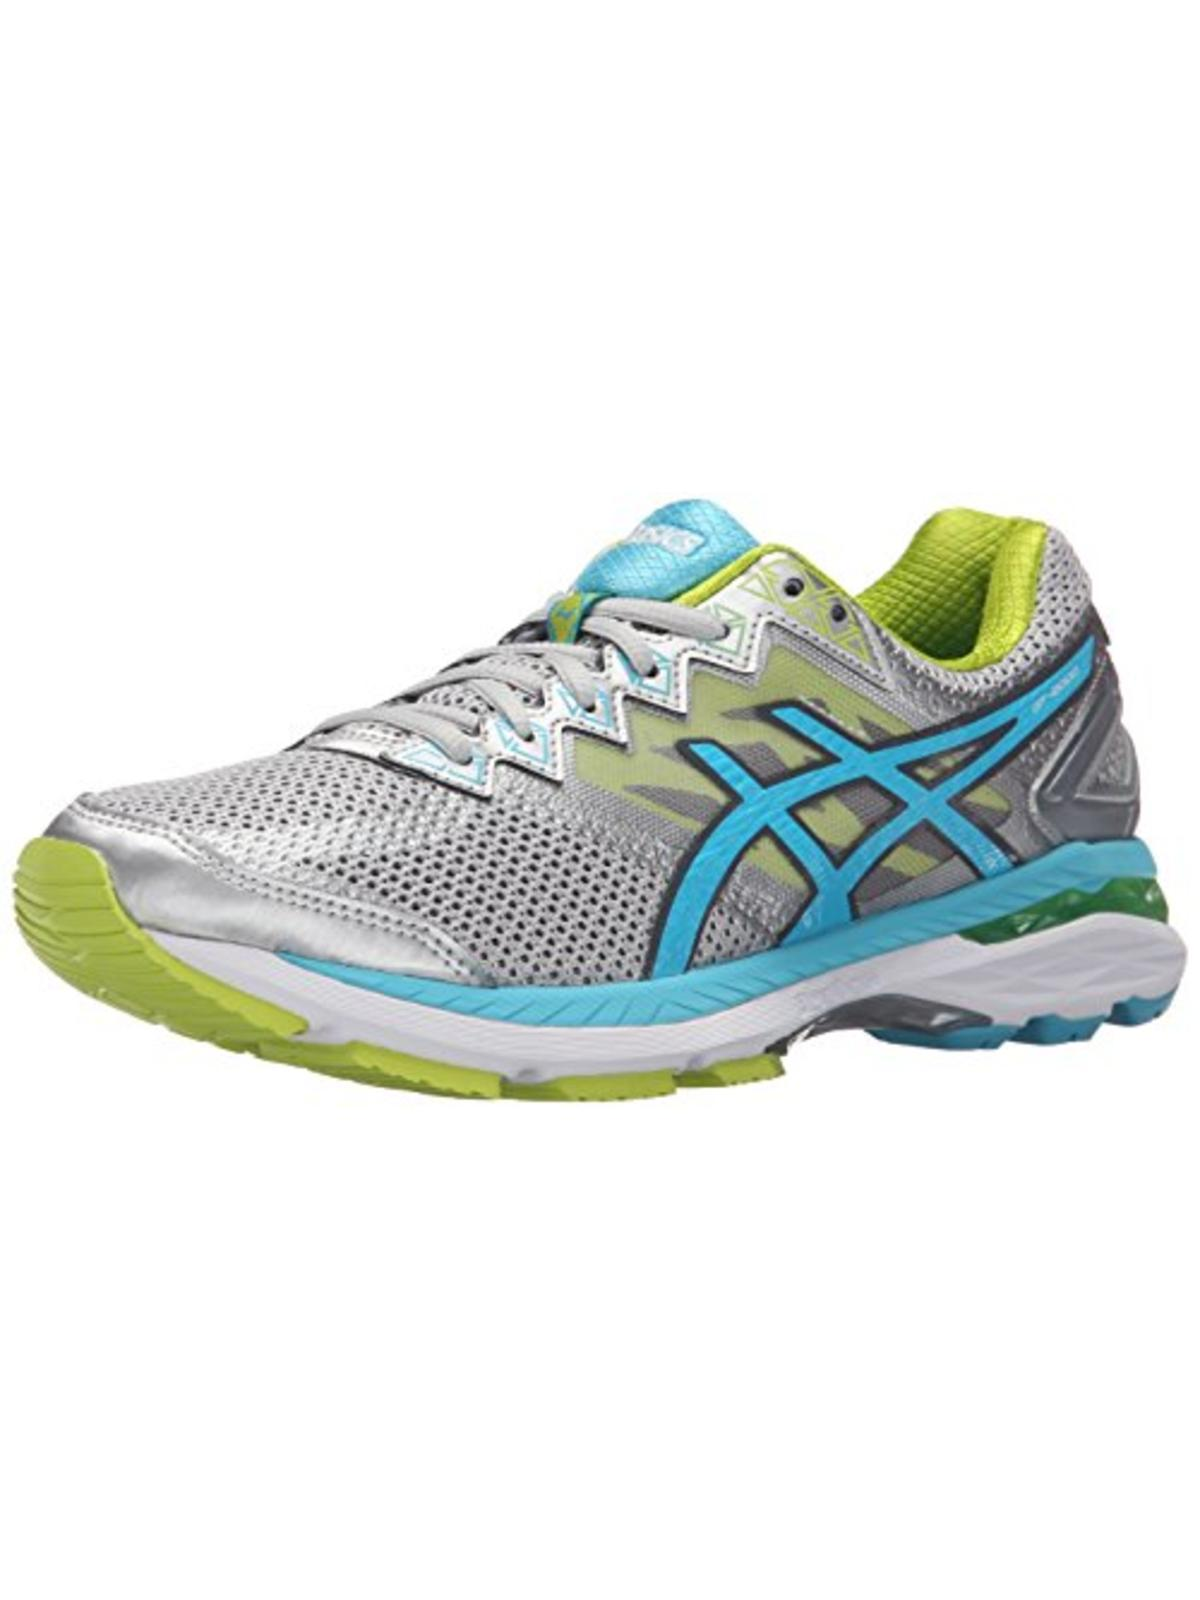 Asics Womens GT-2000 Trainer FluidRide Running Shoes